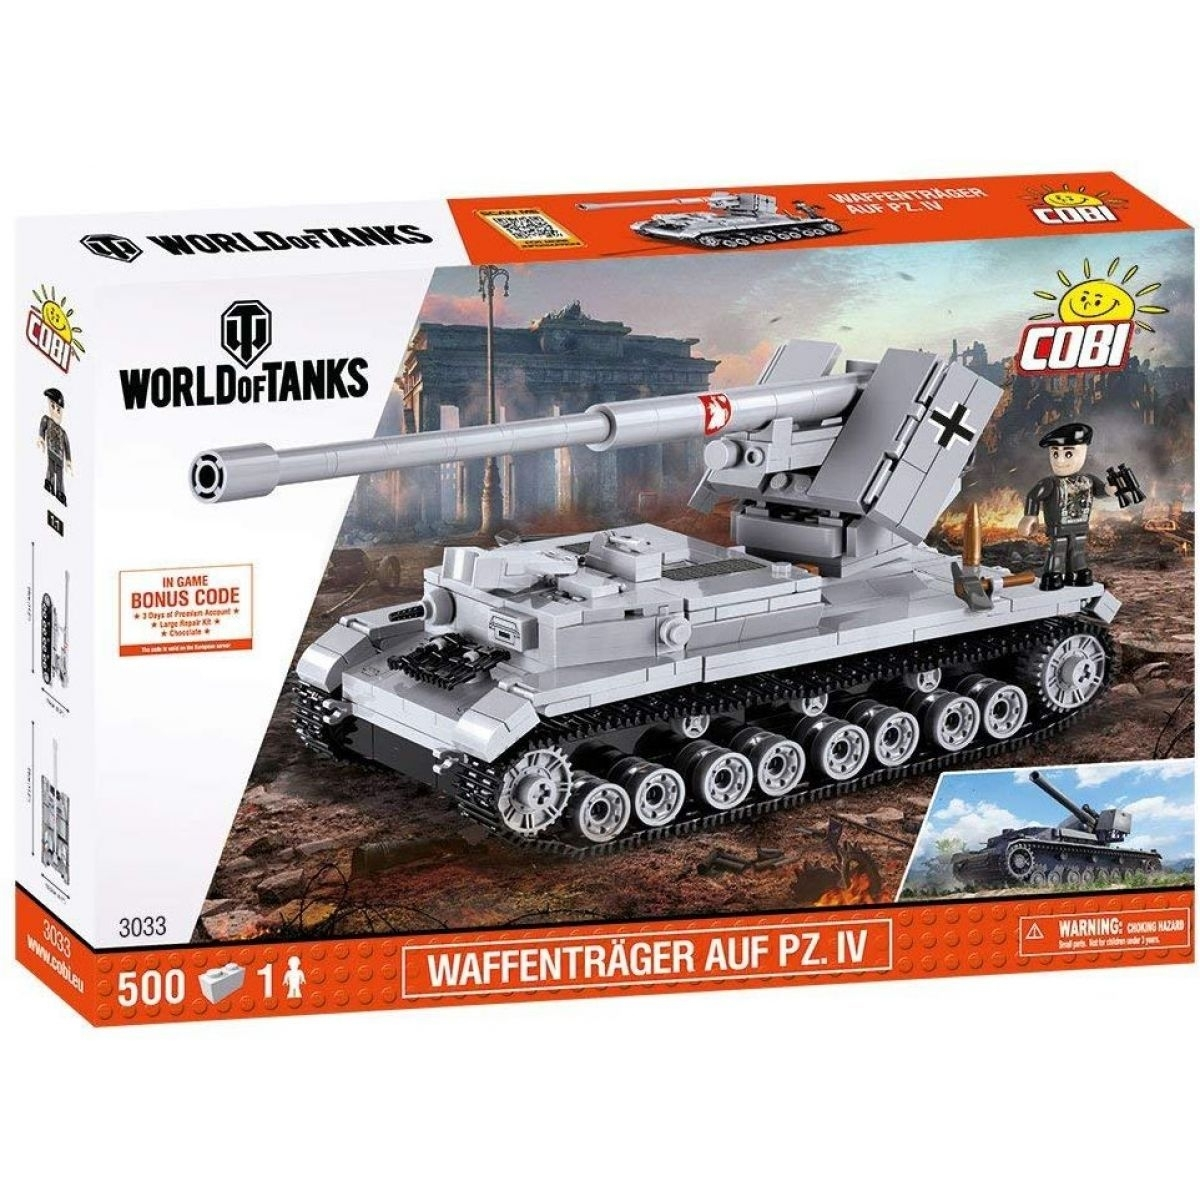 Cobi 3033 Malá armáda Waffentrager AUF PZ. IV World Of Tanks